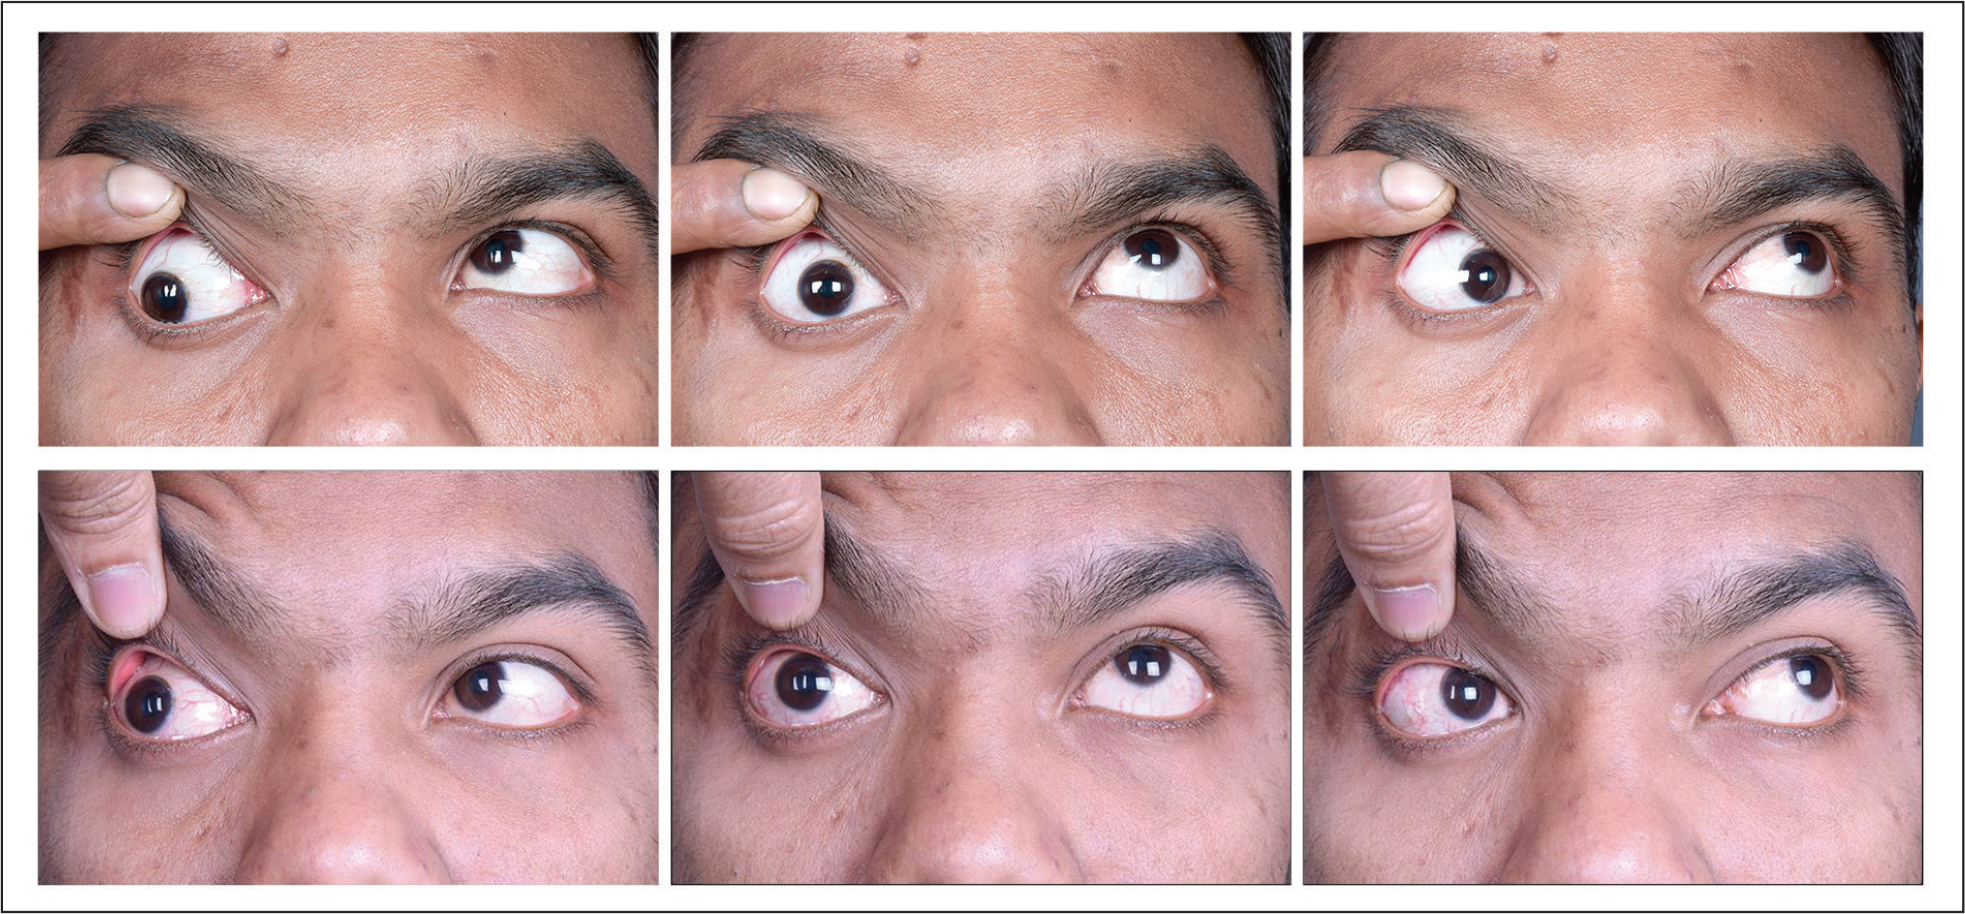 Patient 4 with monocular elevation deficit. Preoperatively the patient has a −5 limitation of elevation in abduction (top left) compared to a −4 limitation in straight up gaze (top center) and a −3 limitation in adduction (top right). Postoperatively there is improvement in the elevation, especially in abduction (bottom left), and also in straight up gaze (bottom center) and adduction (bottom right).